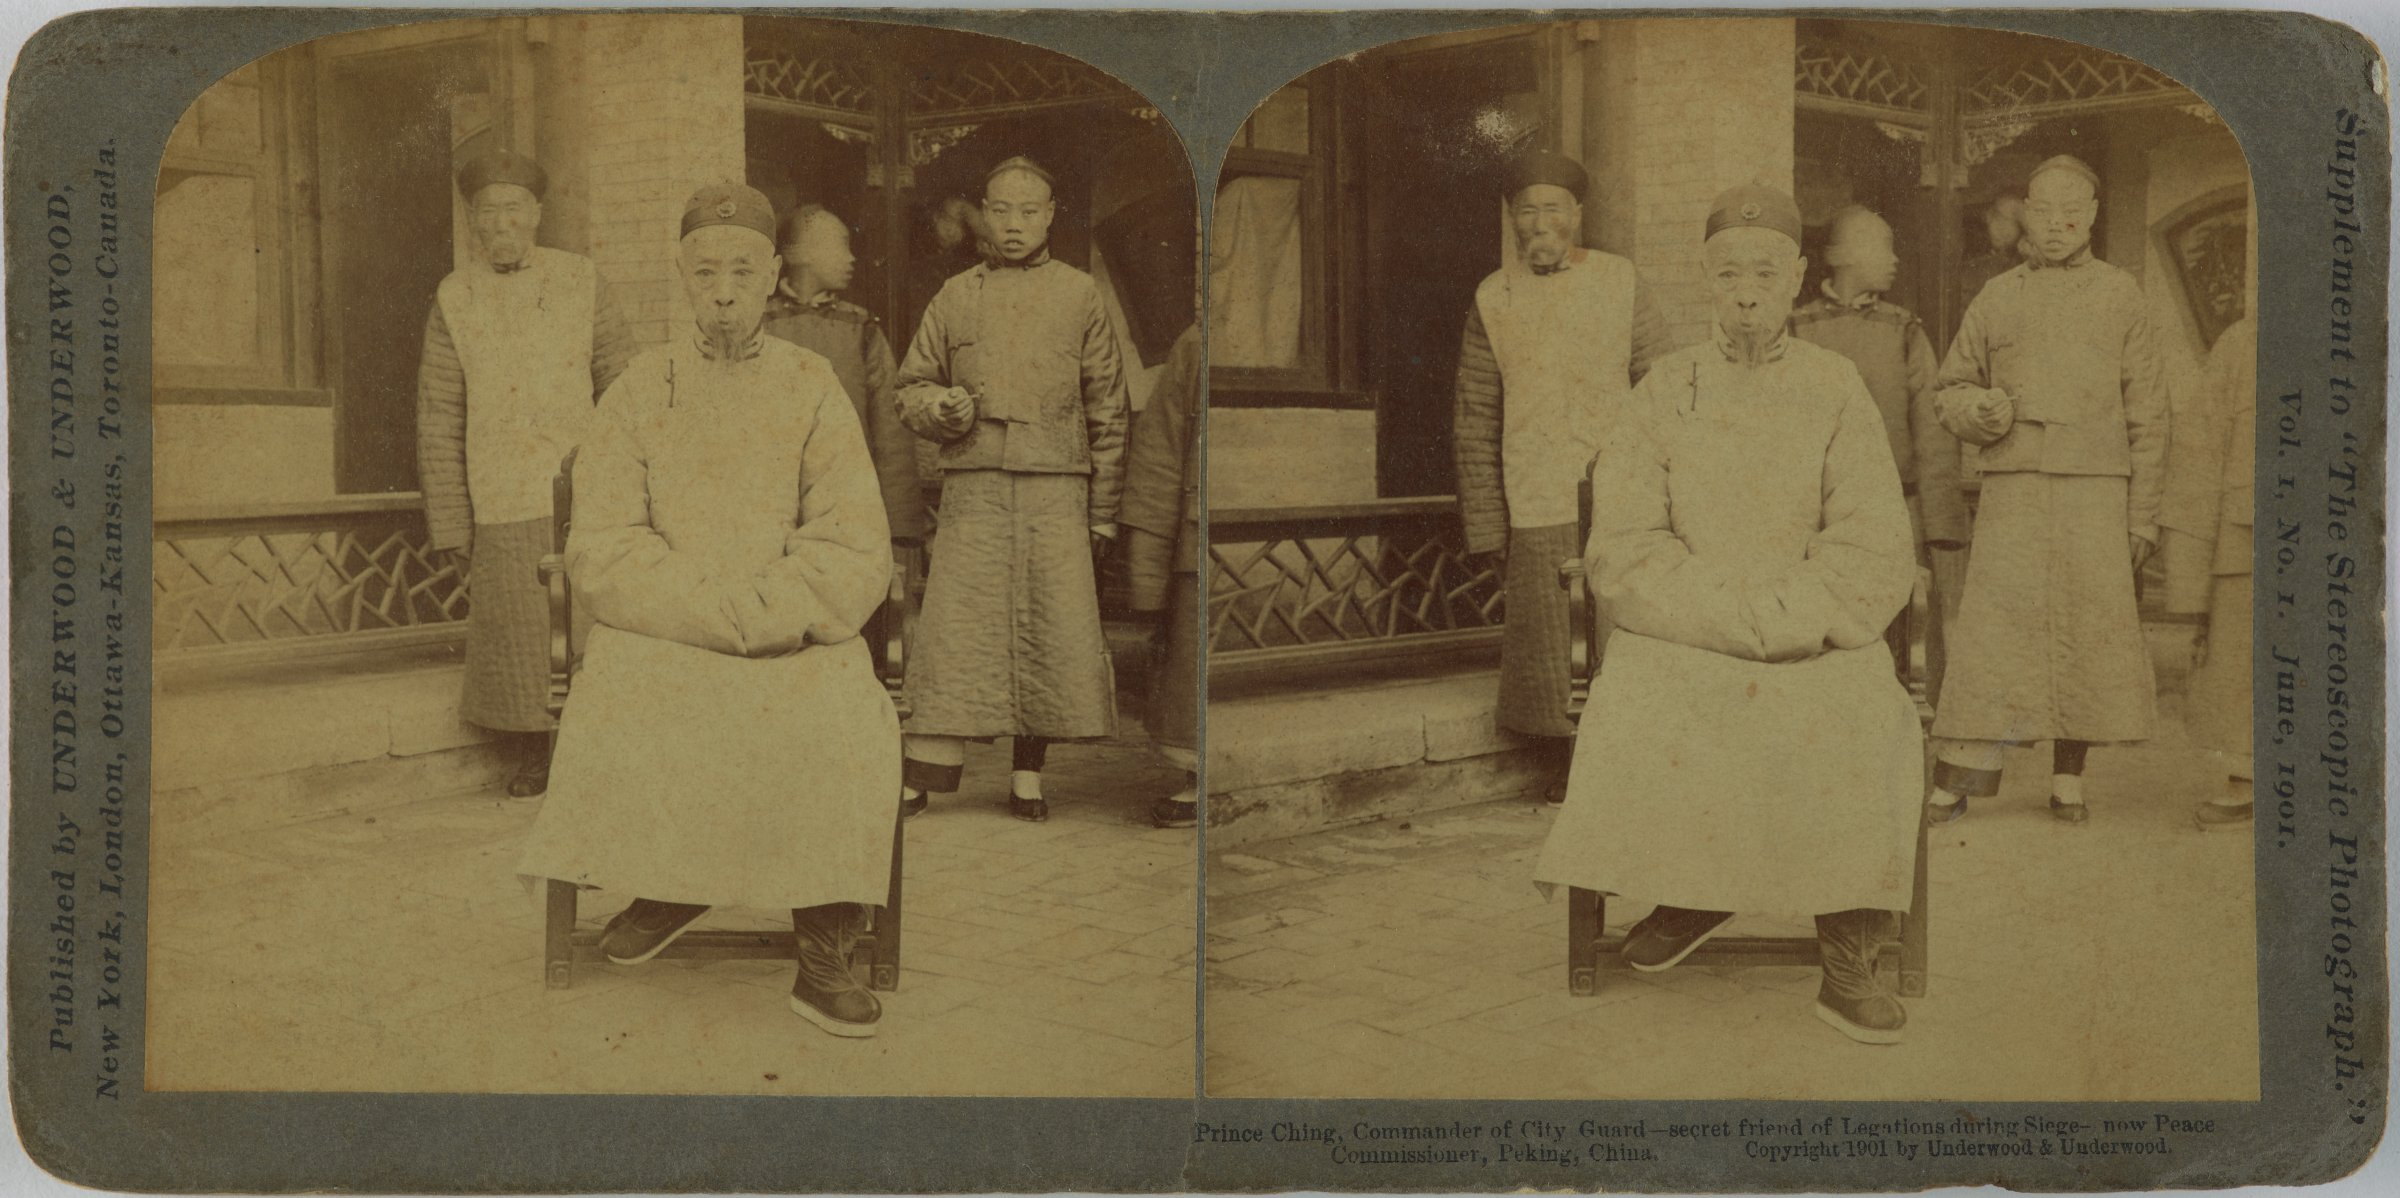 Prince Ching, Commander of City Guard - Secret Friend of Legations during Siege, now Peace Commissioner, Peking, China, Underwood & Underwood Publishers, gelatin silver prints mounted on card